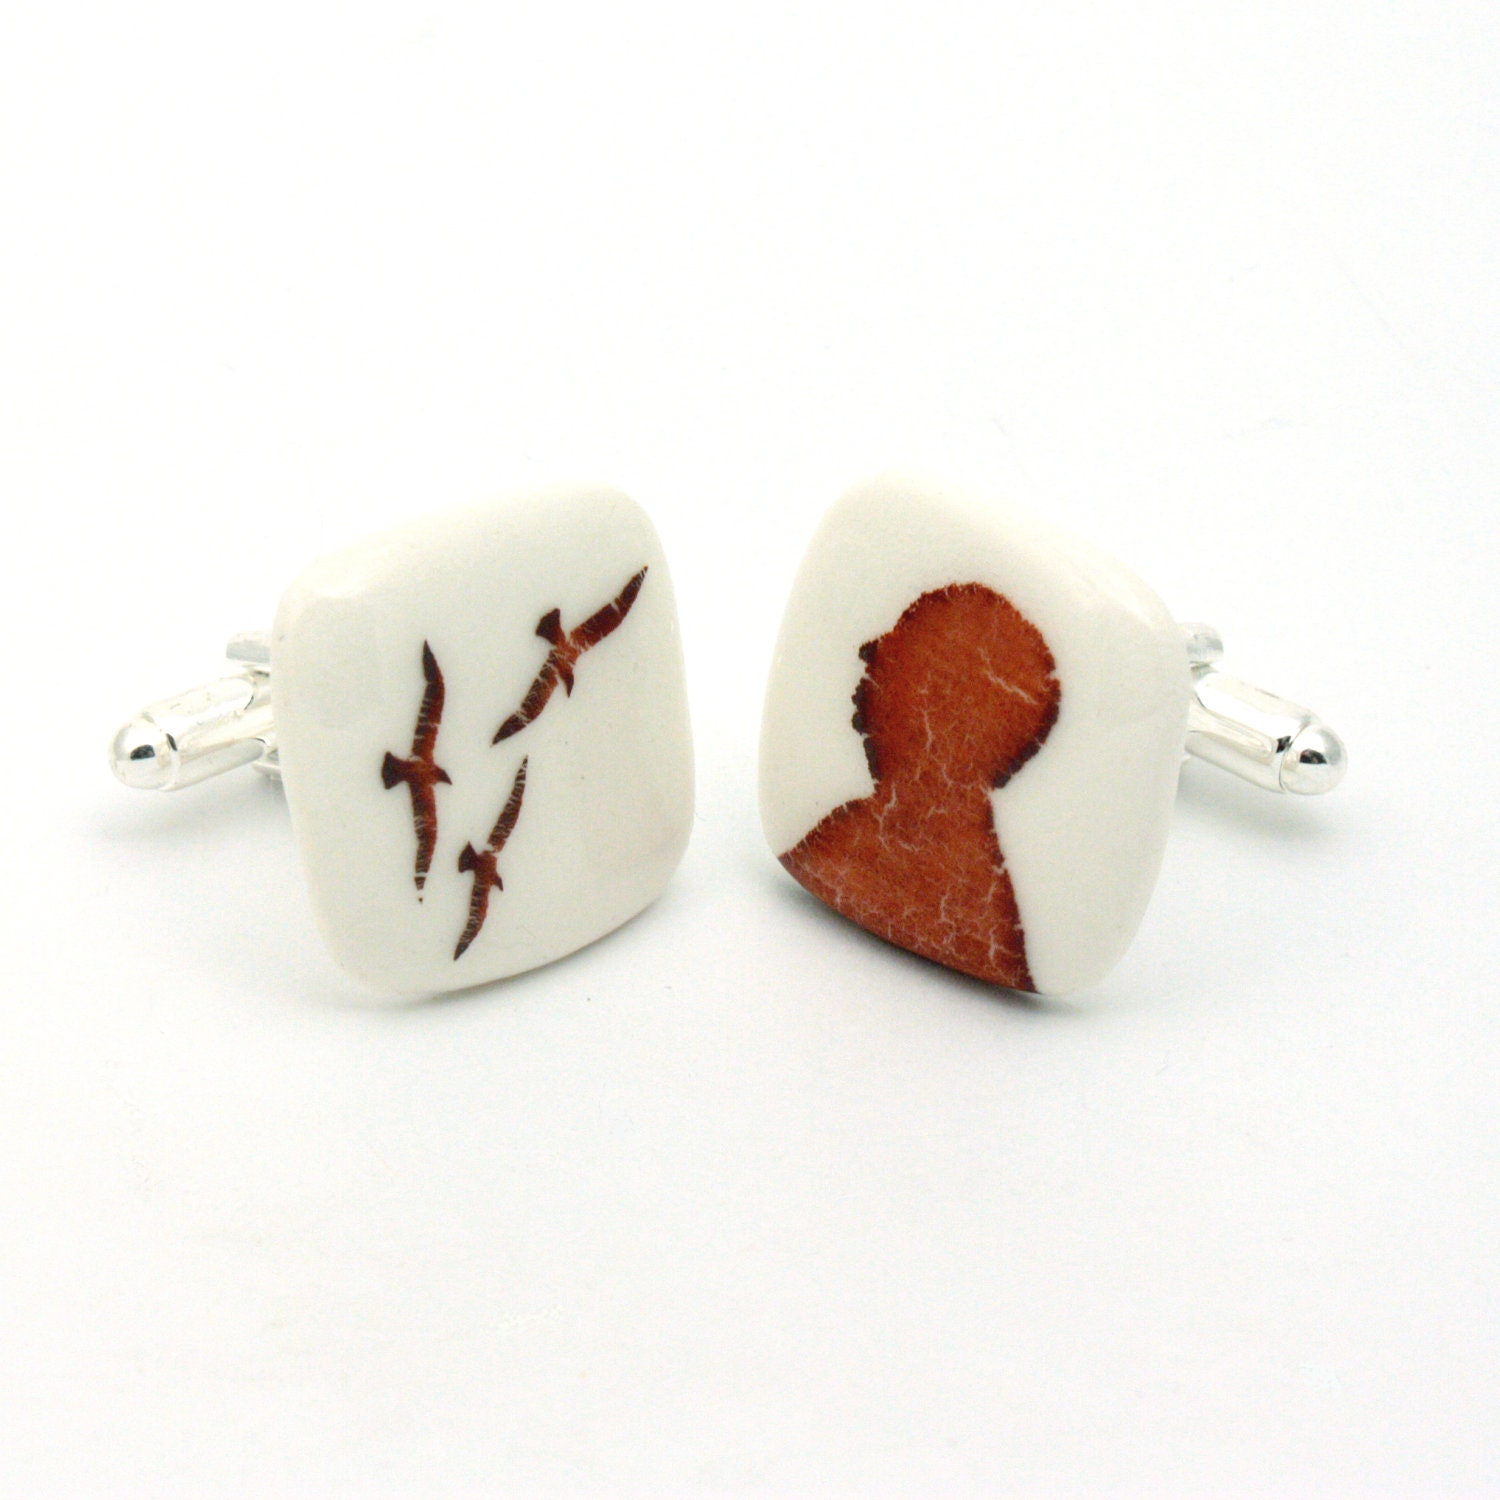 Alfred Hitchcock Cuff Links Silhouette The Birds Horror Movie on White Porcelain Handmade  Psychological Thriller